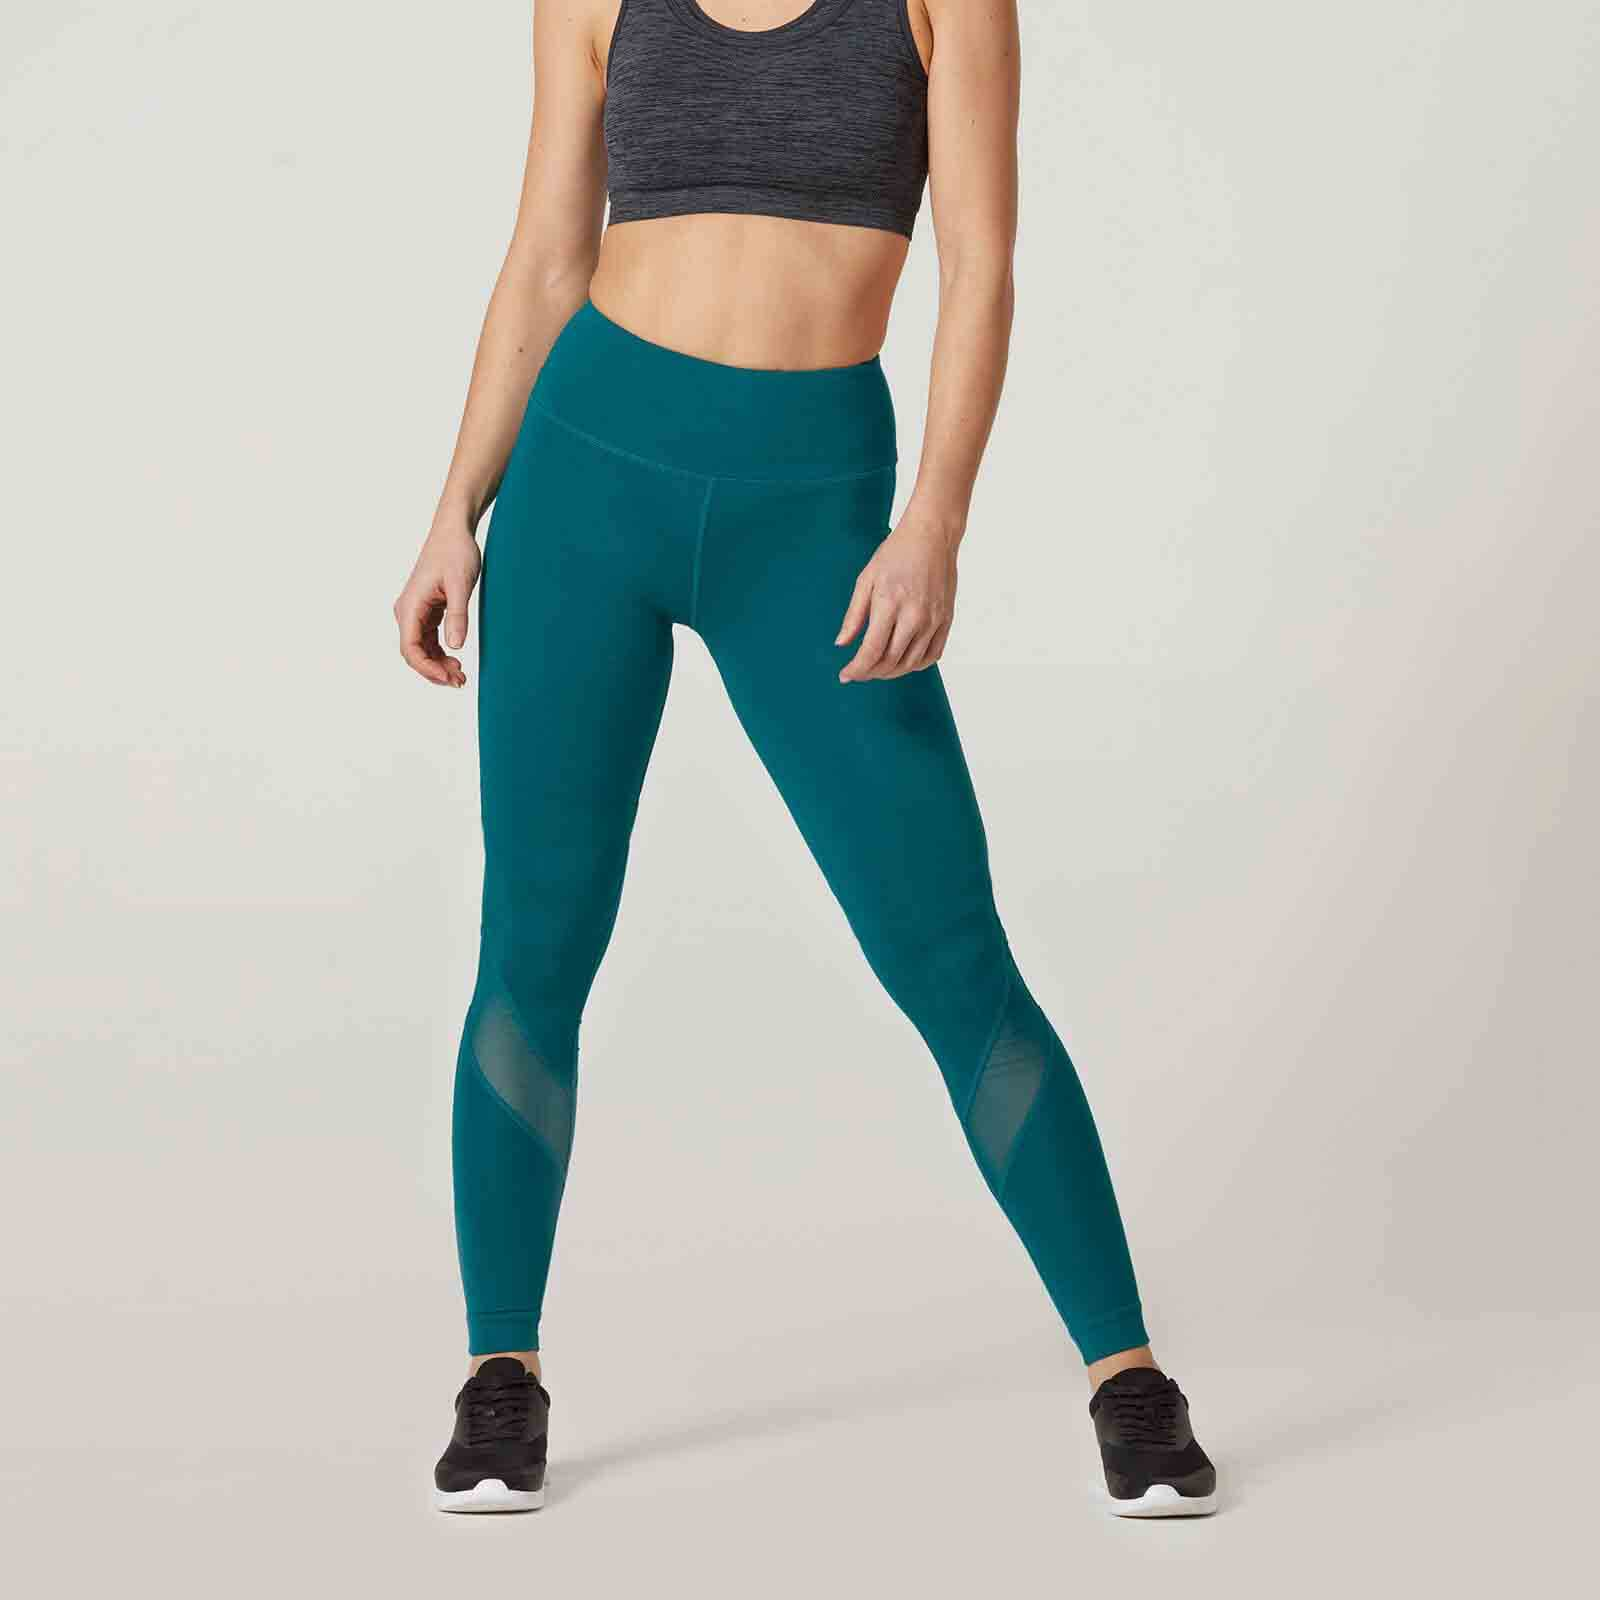 Myprotein Heartbeat Full-Length Leggings - Teal, XS